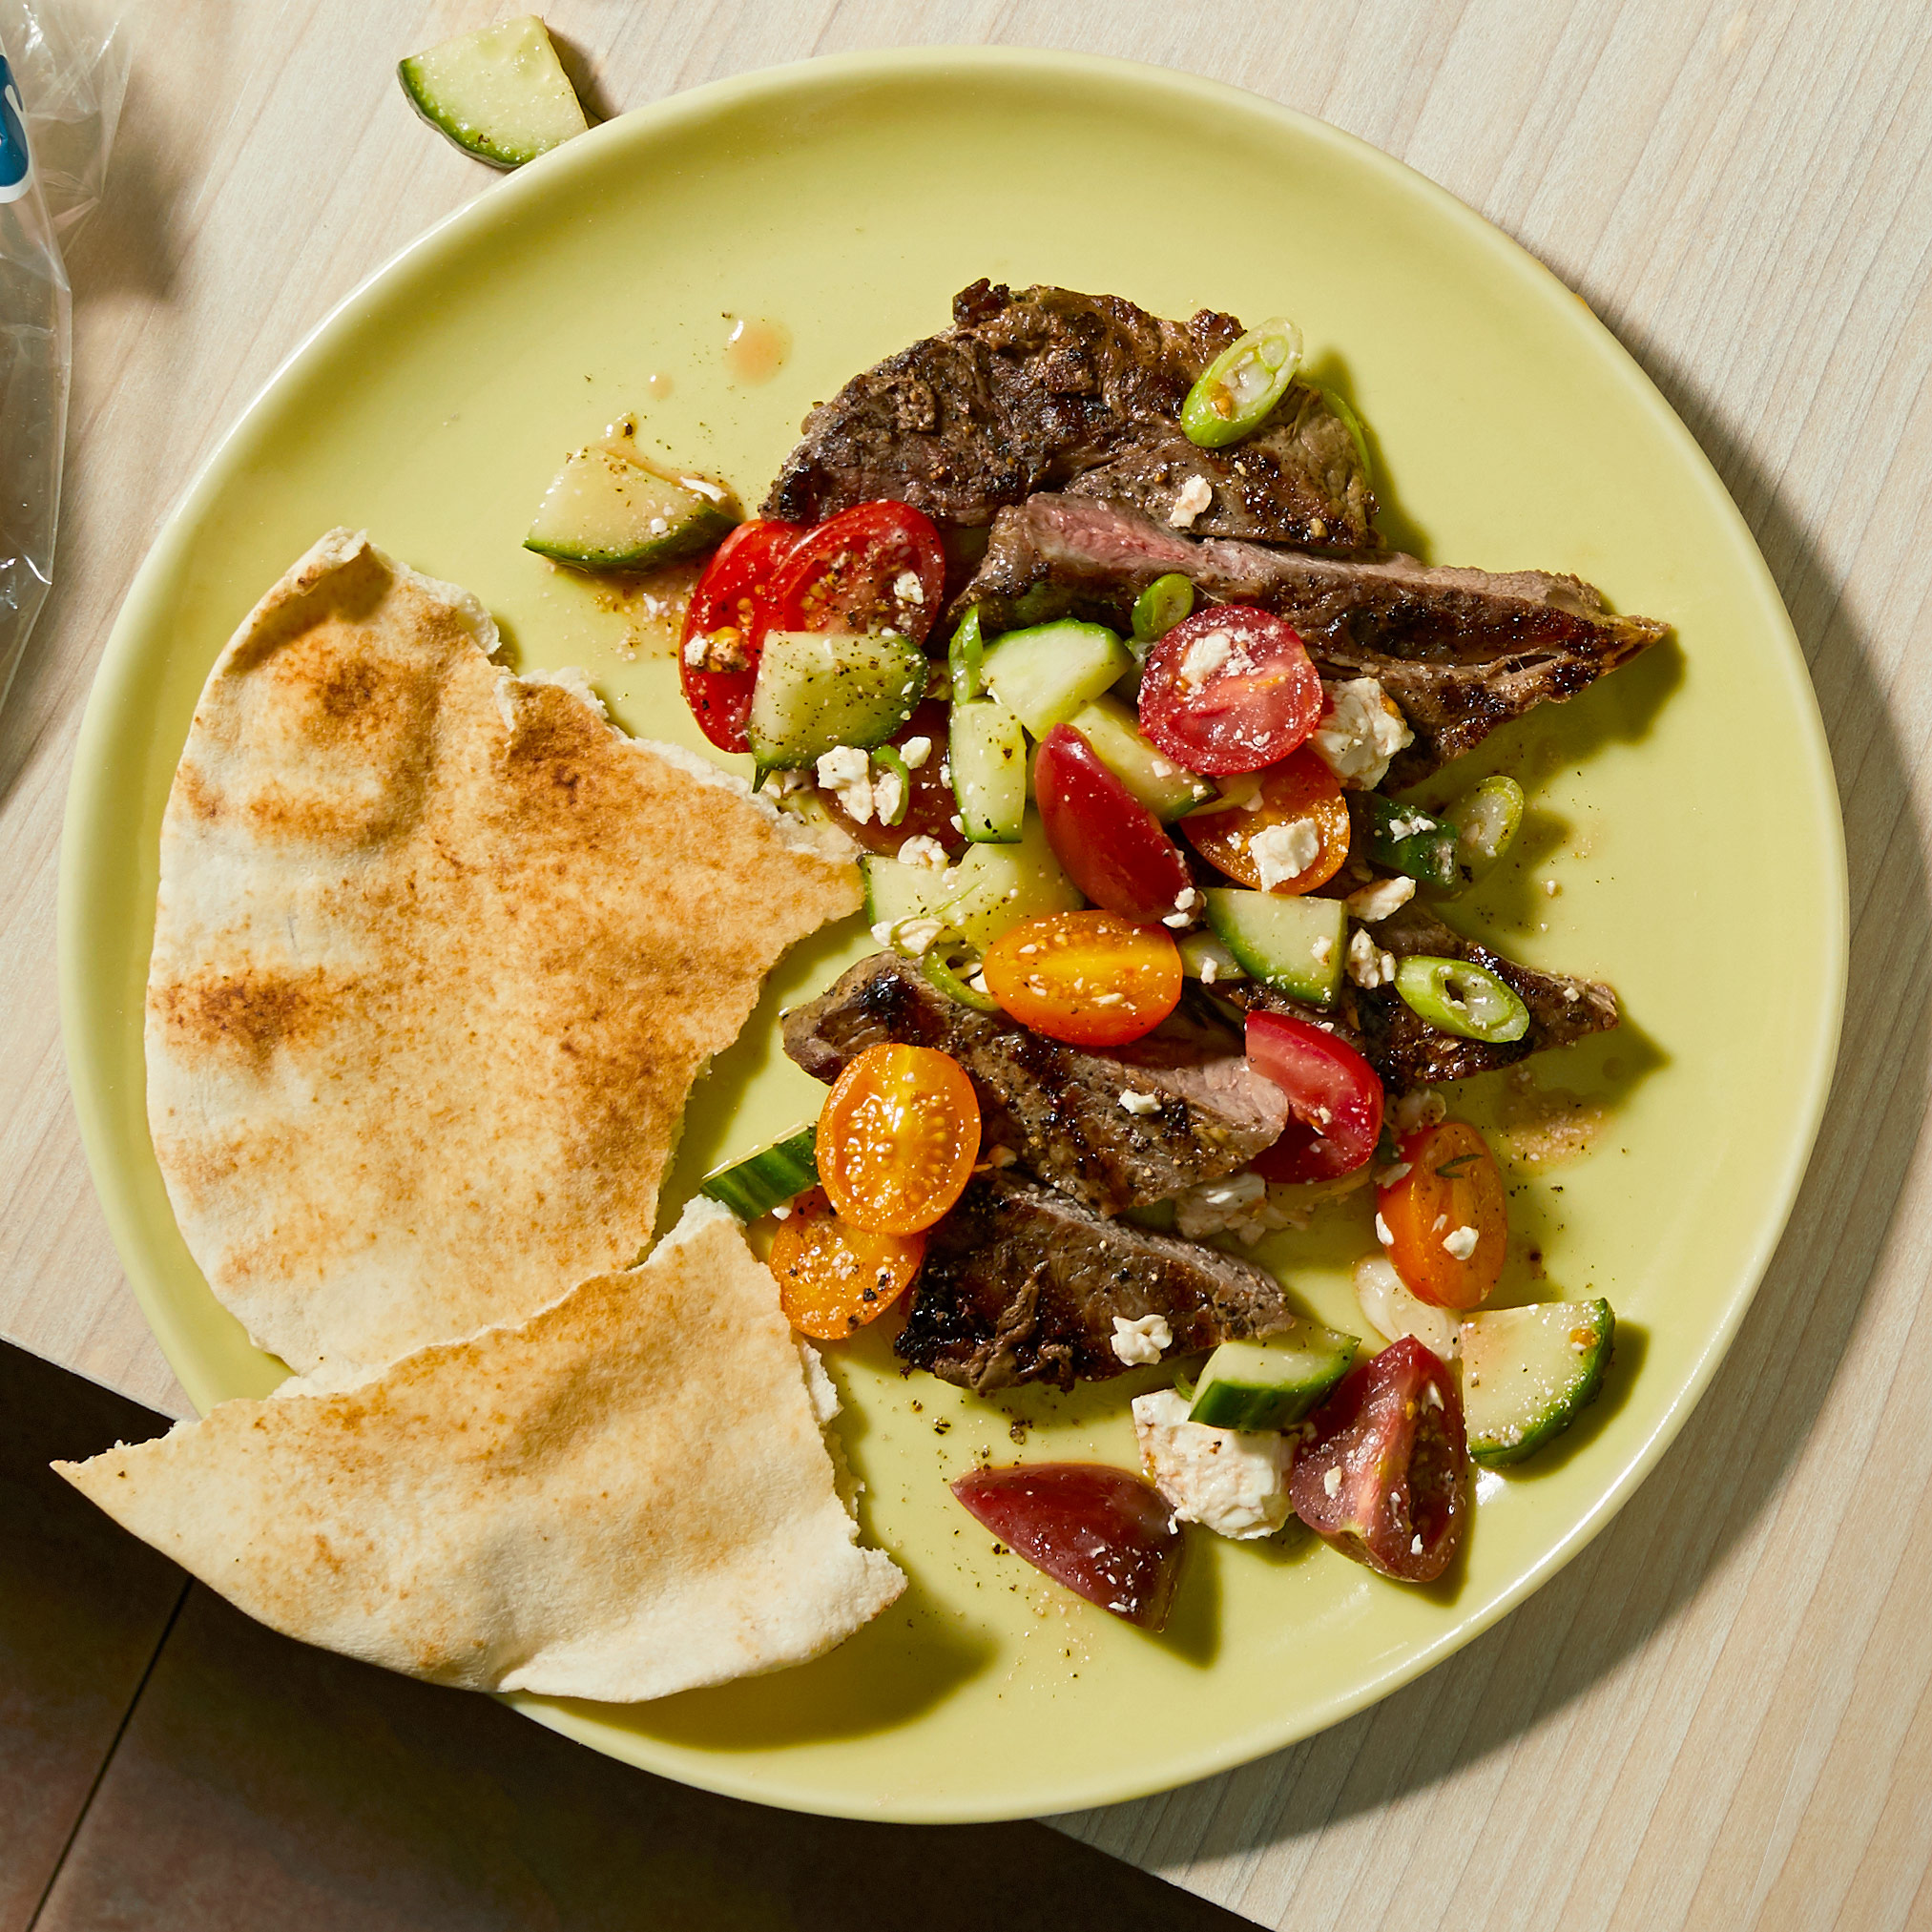 greek steak and salad on plate